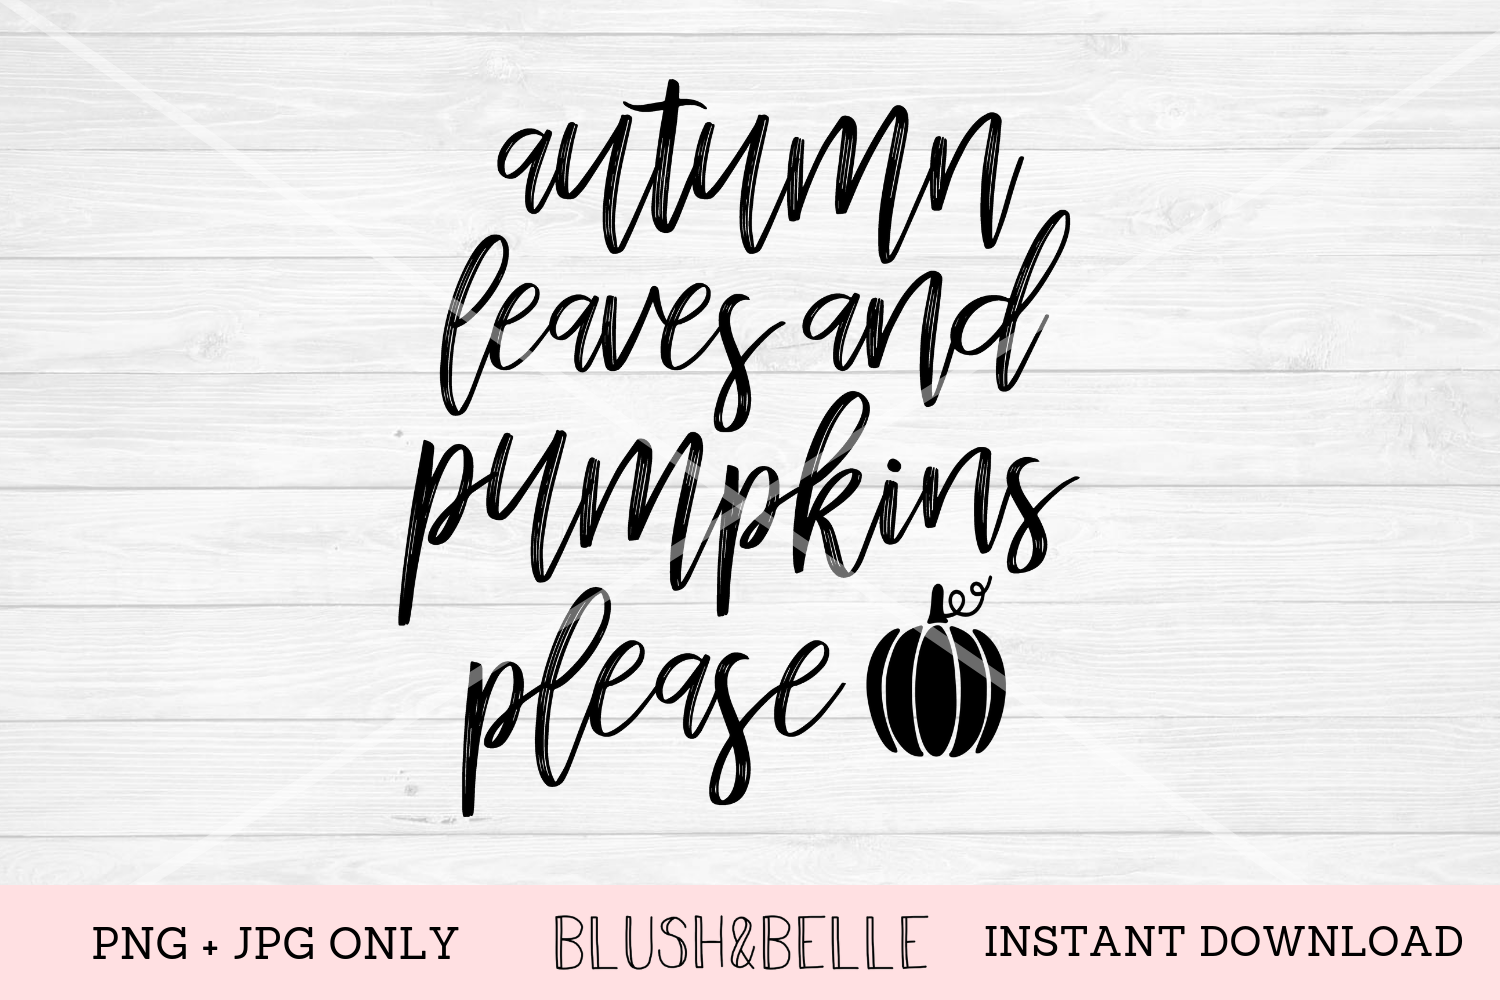 Autumn Leaves and Pumpkin Please - PNG, JPG example image 1